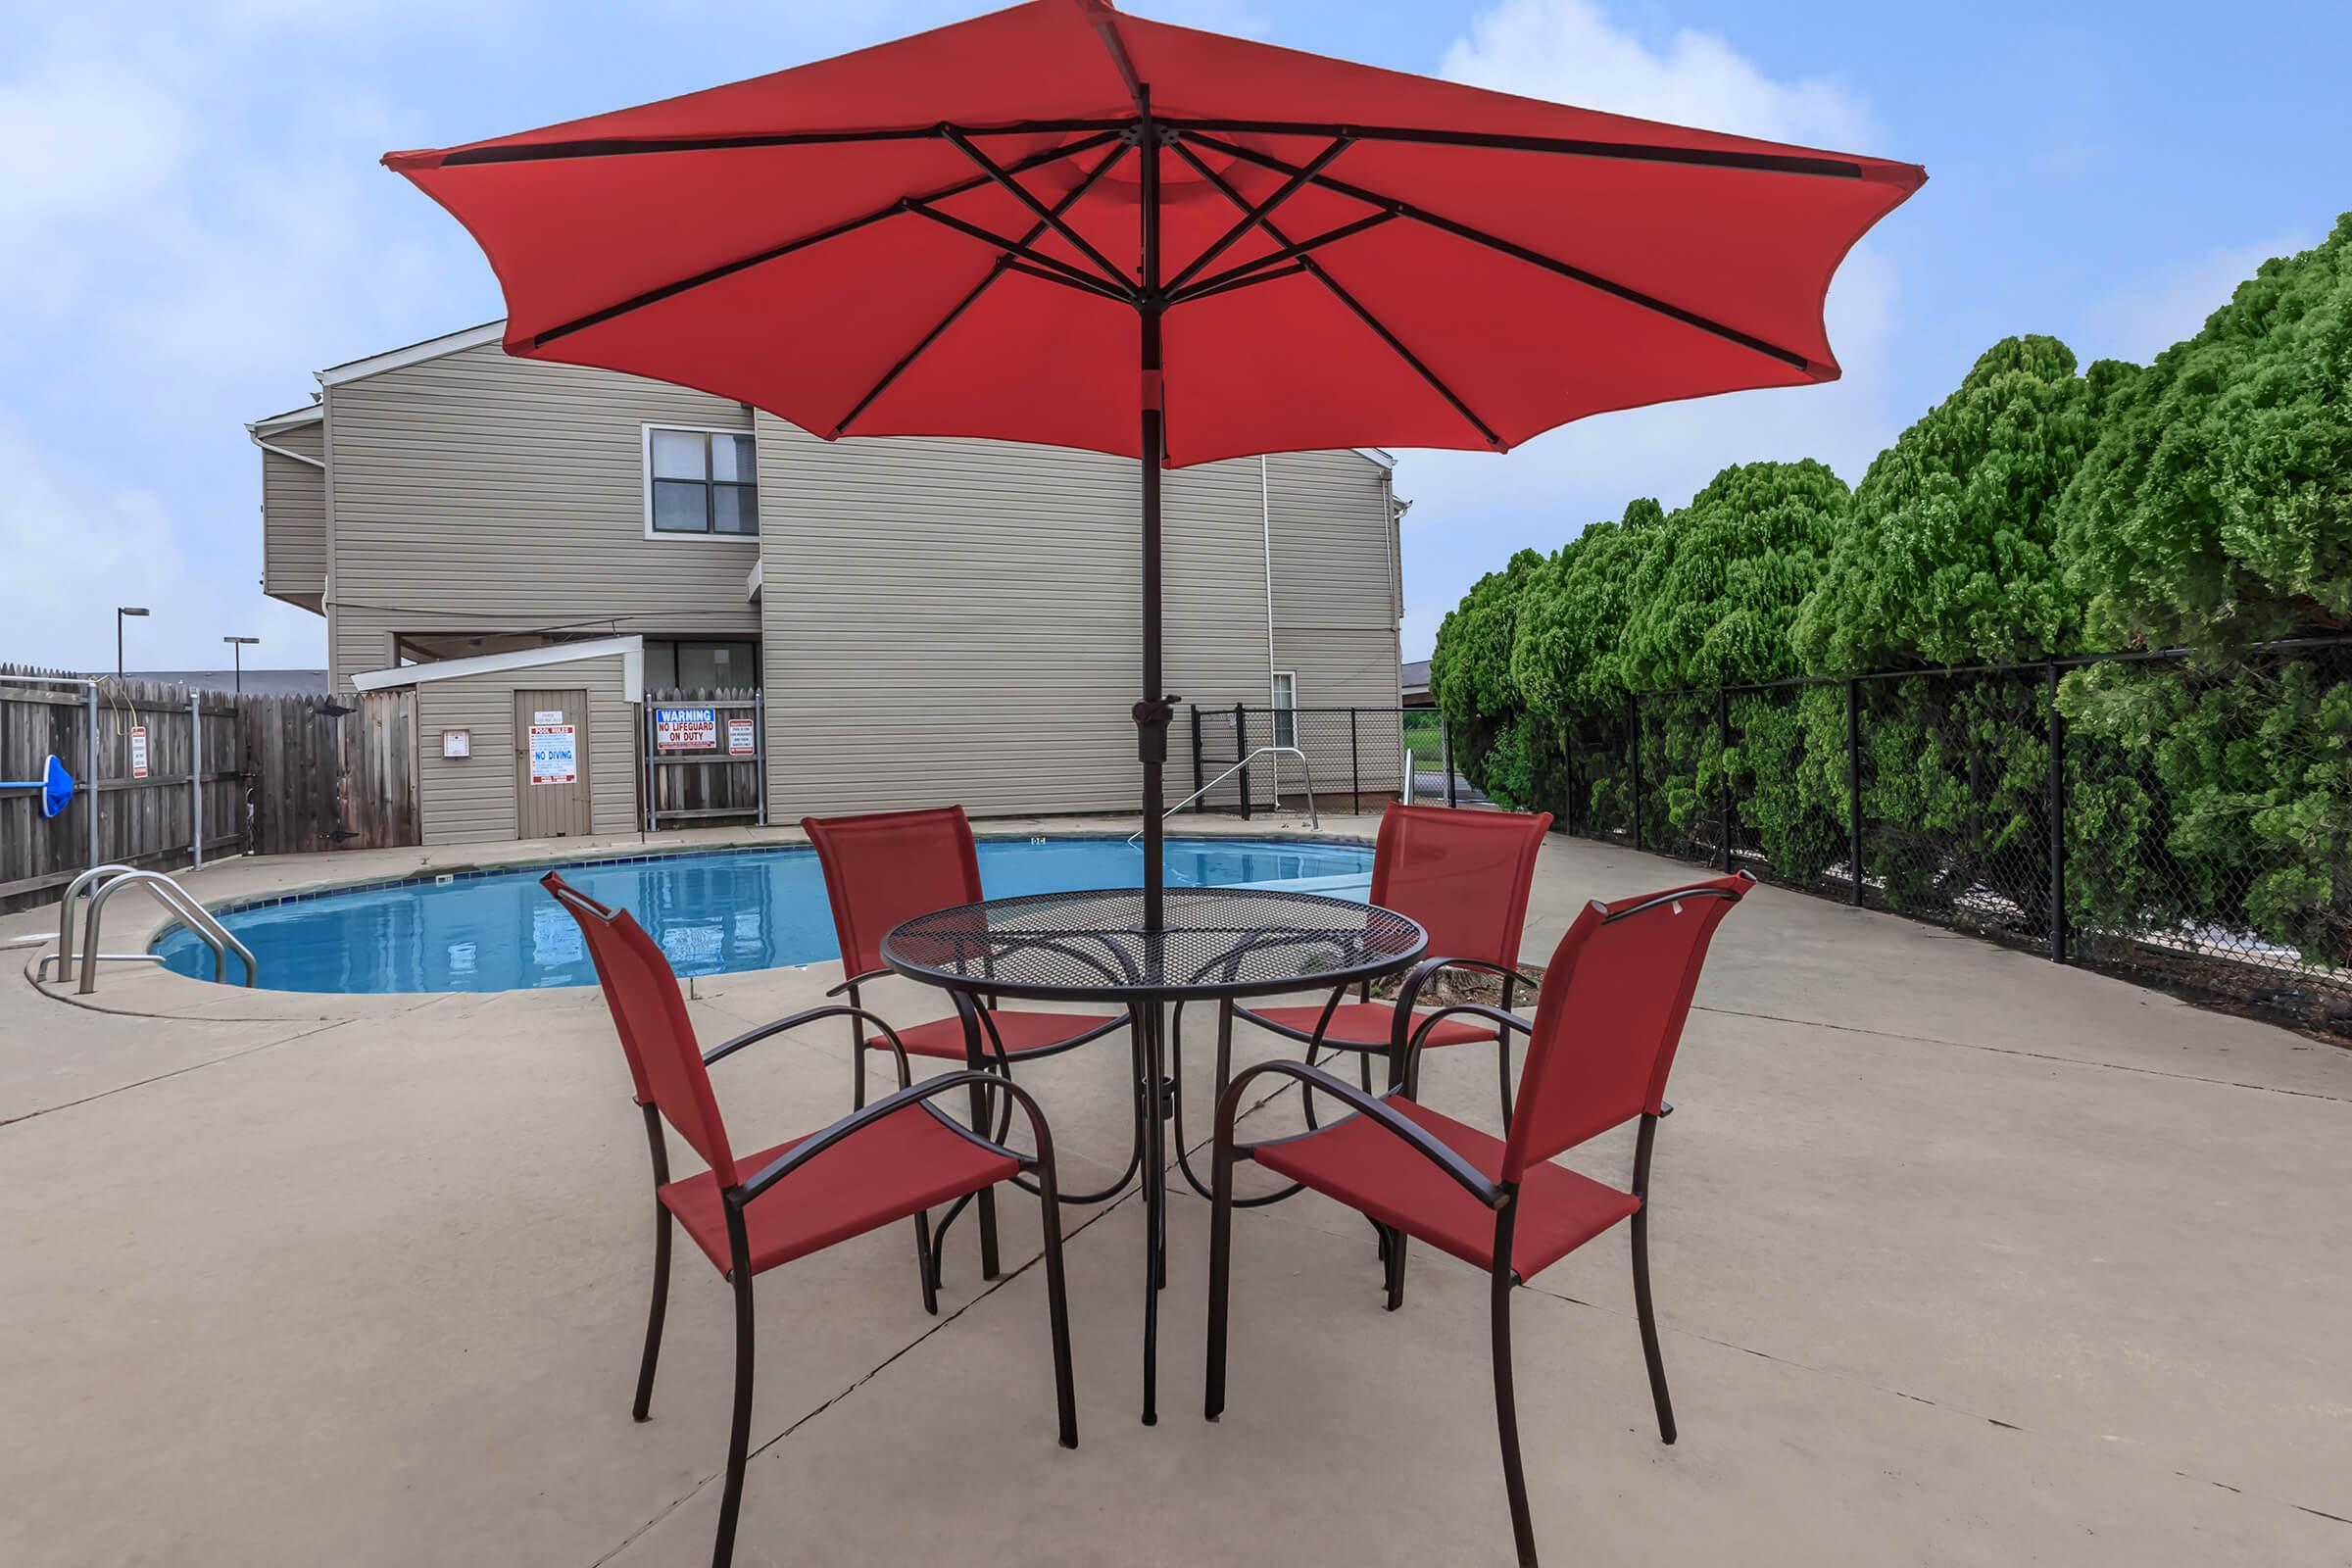 a large red umbrella sitting on top of a chair